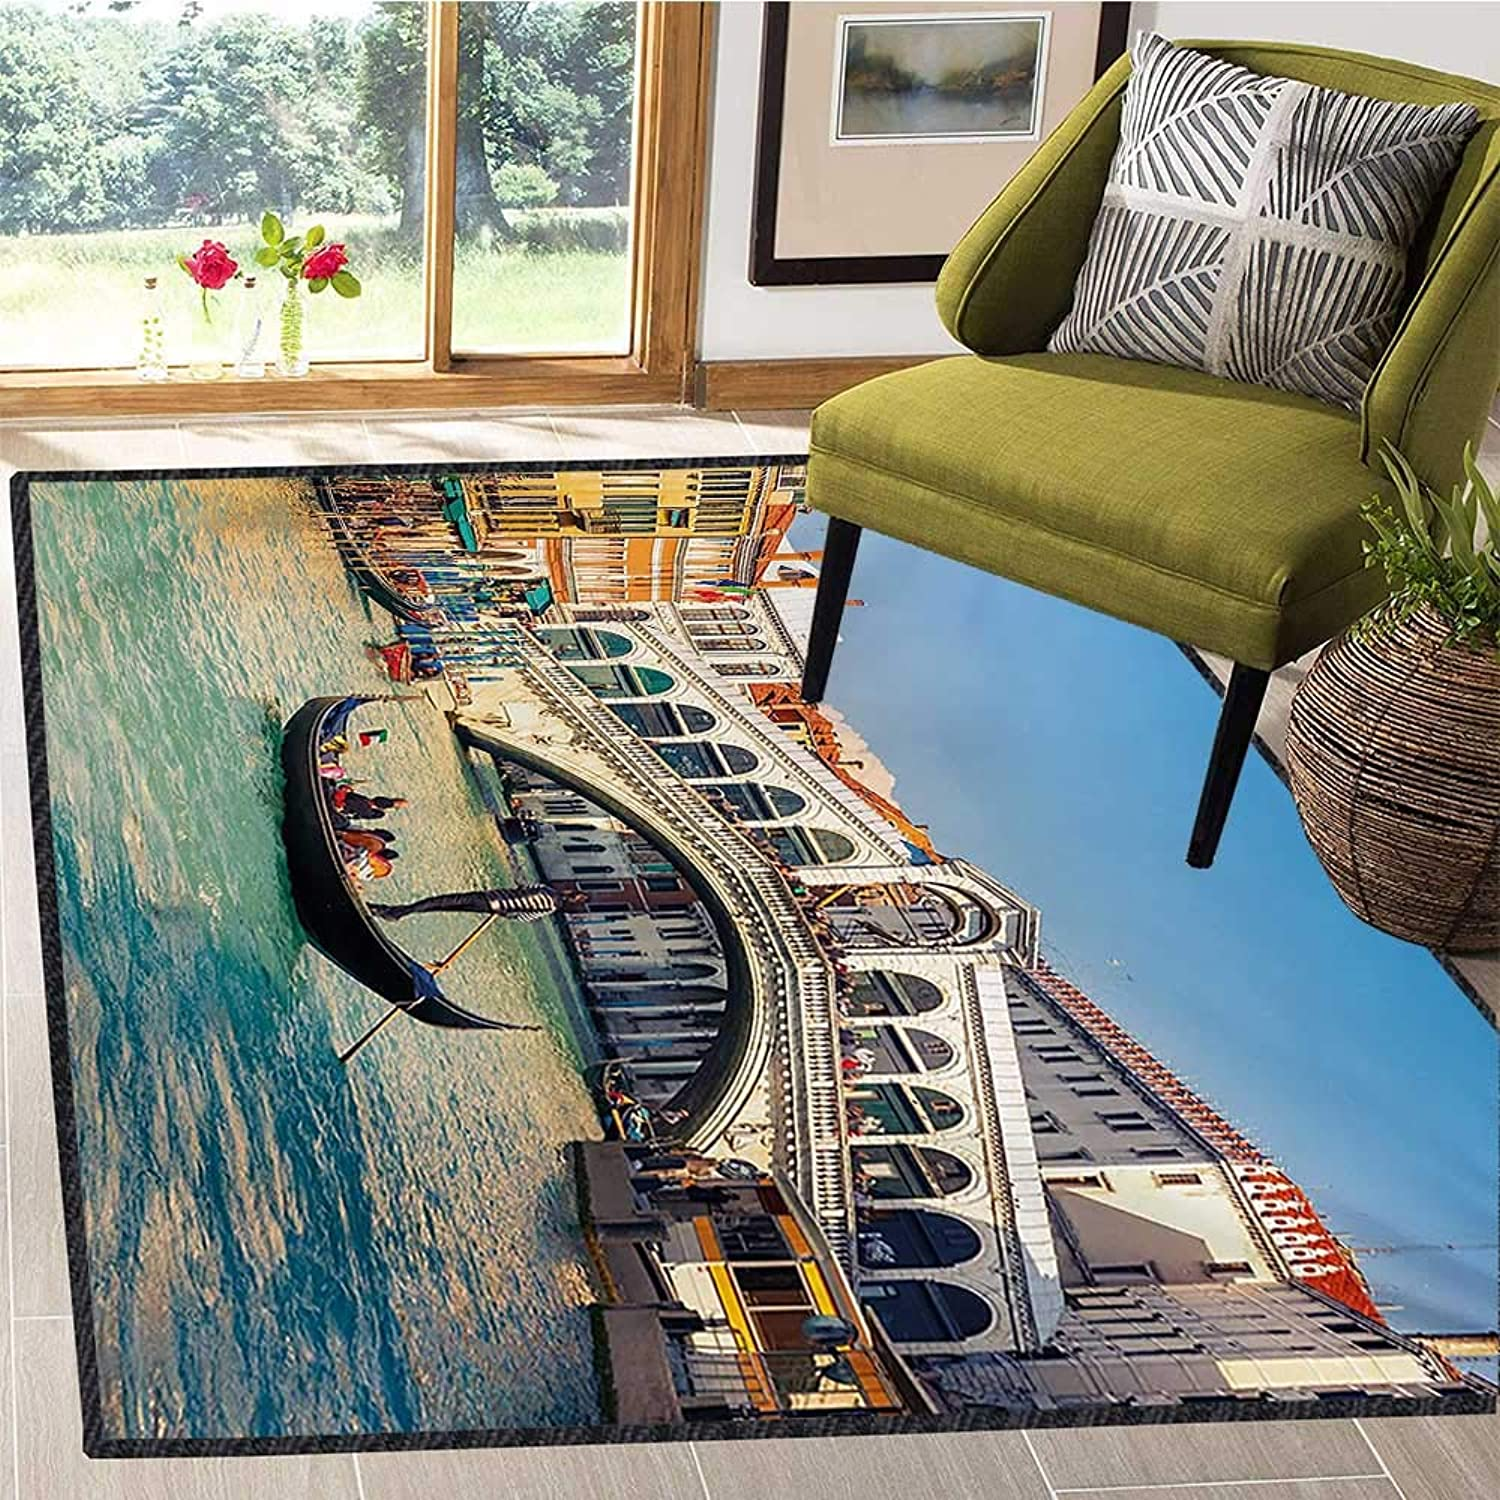 Venice, Door Mats for Inside, Cityscape on a Sunny Day with Rialto Bridge Venetian Grand Canal Travel Destination, Door Mat Indoors 5x6 Ft Multicolor